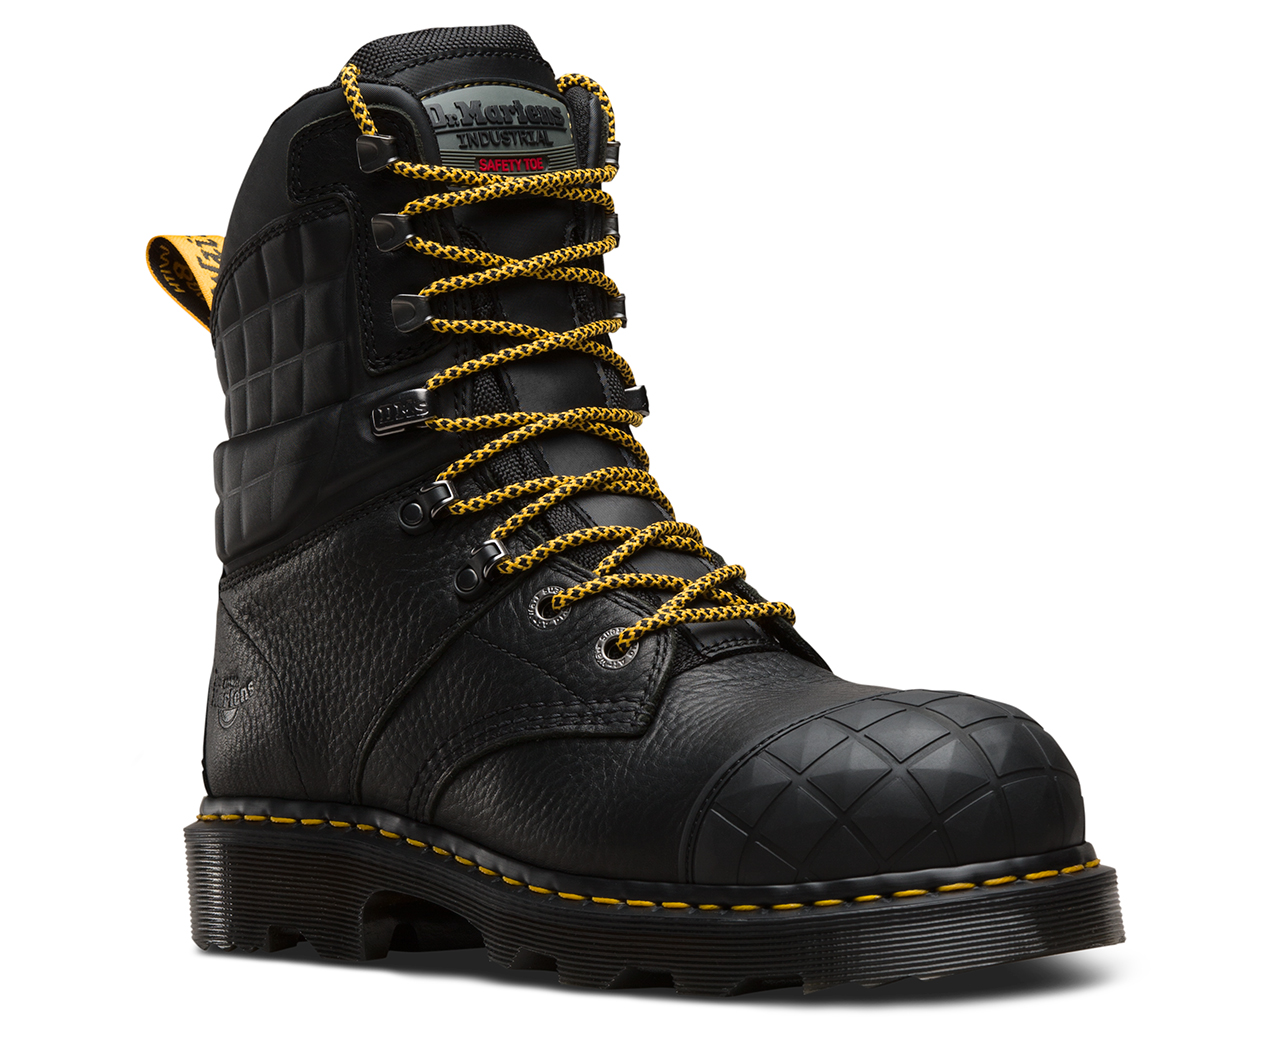 archives category hro shoes src ci foundry gorilla work comfortable home steel rock boots safety phoenix footwear fe most fall toe hi comforter product